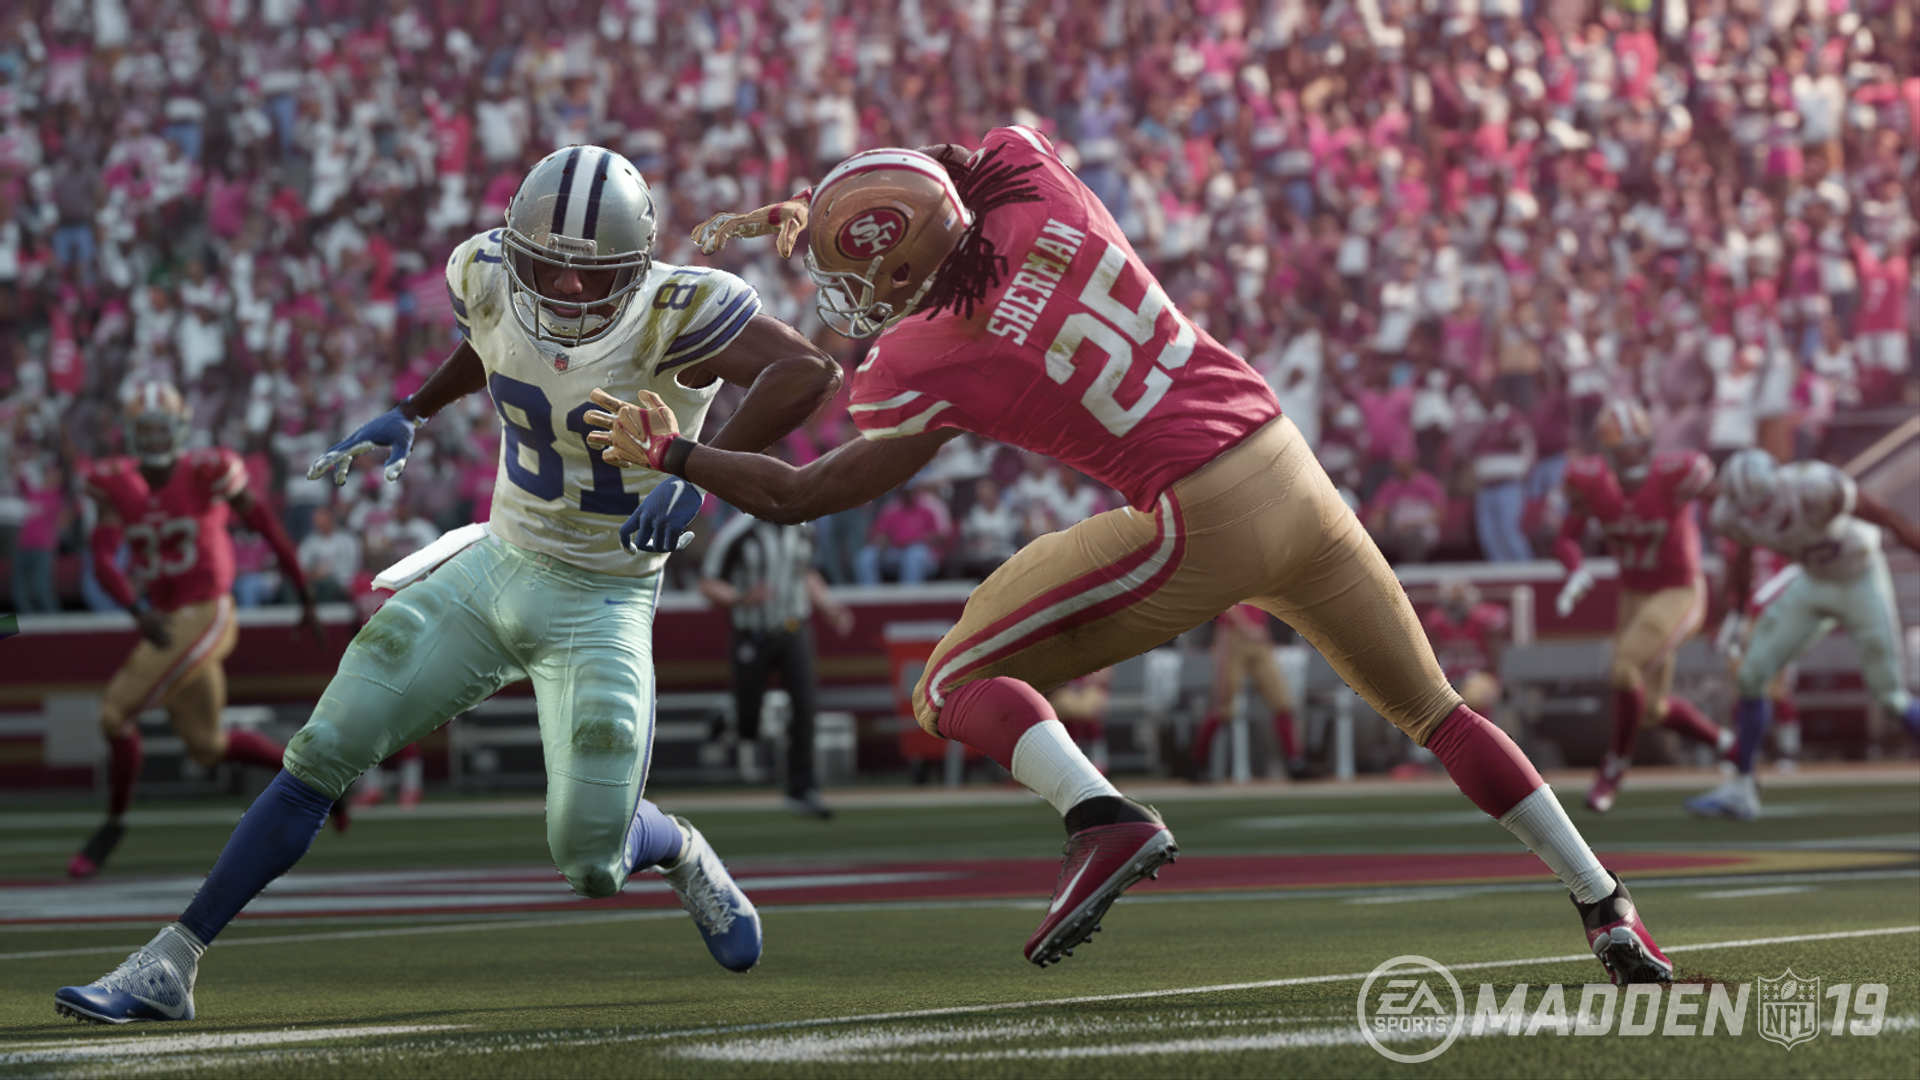 Today's Best Game Deals: Madden NFL 19 $40, Red Dead Redemption $10, more